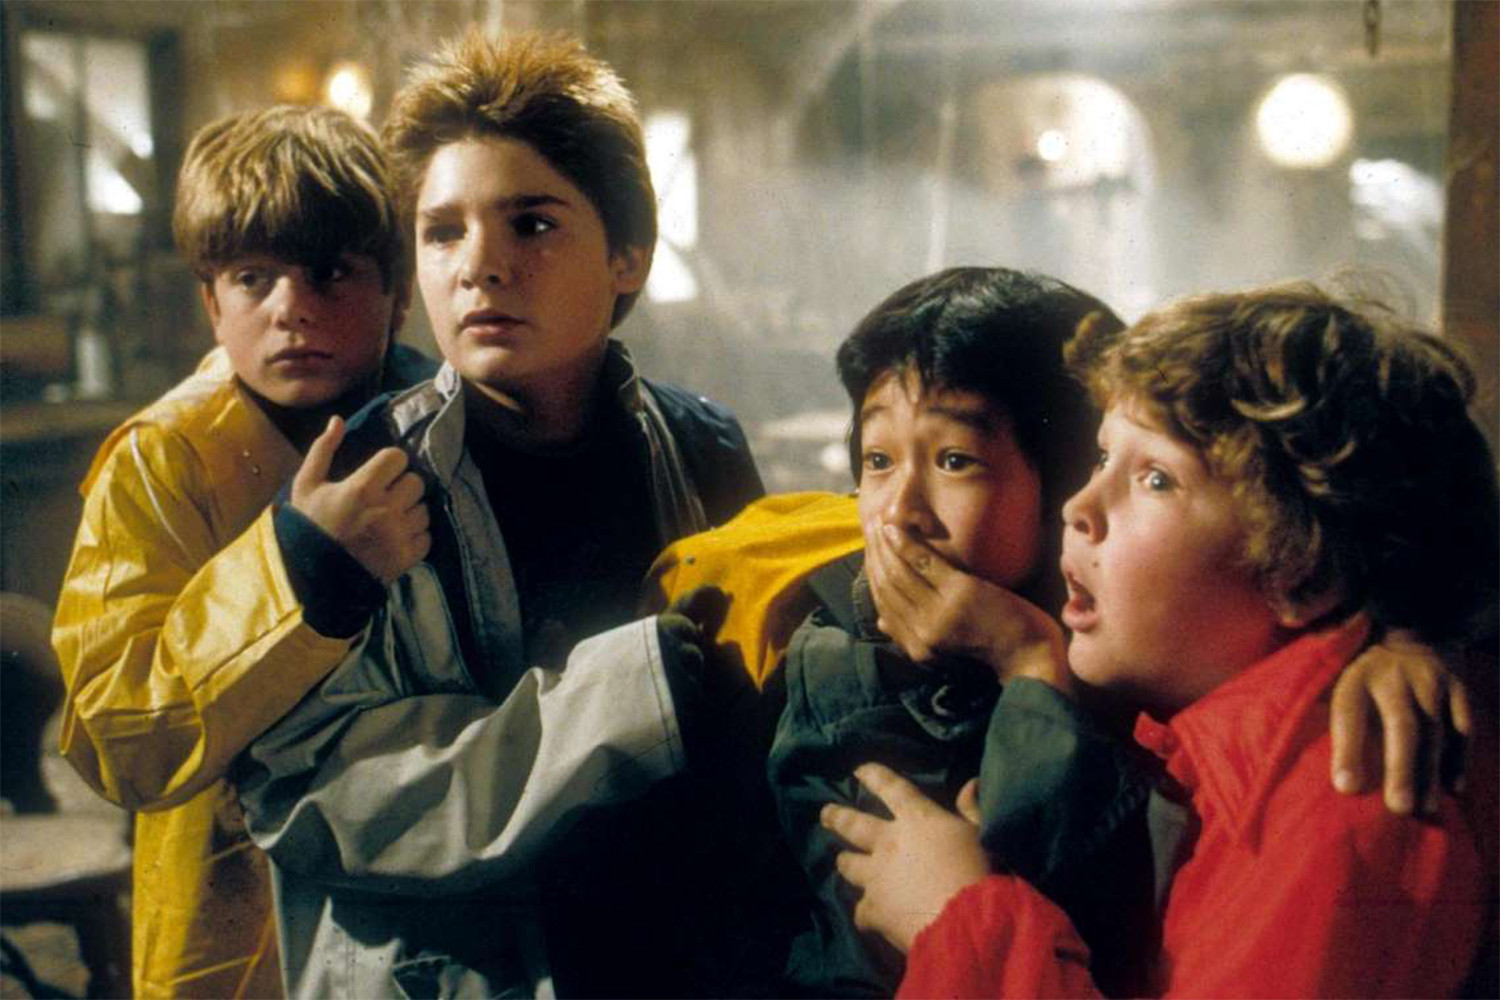 Taking inspiration from the 1985 film The Goonies, this Fox pilot has a central mystery of its own. (Photo: Warner Bros.)